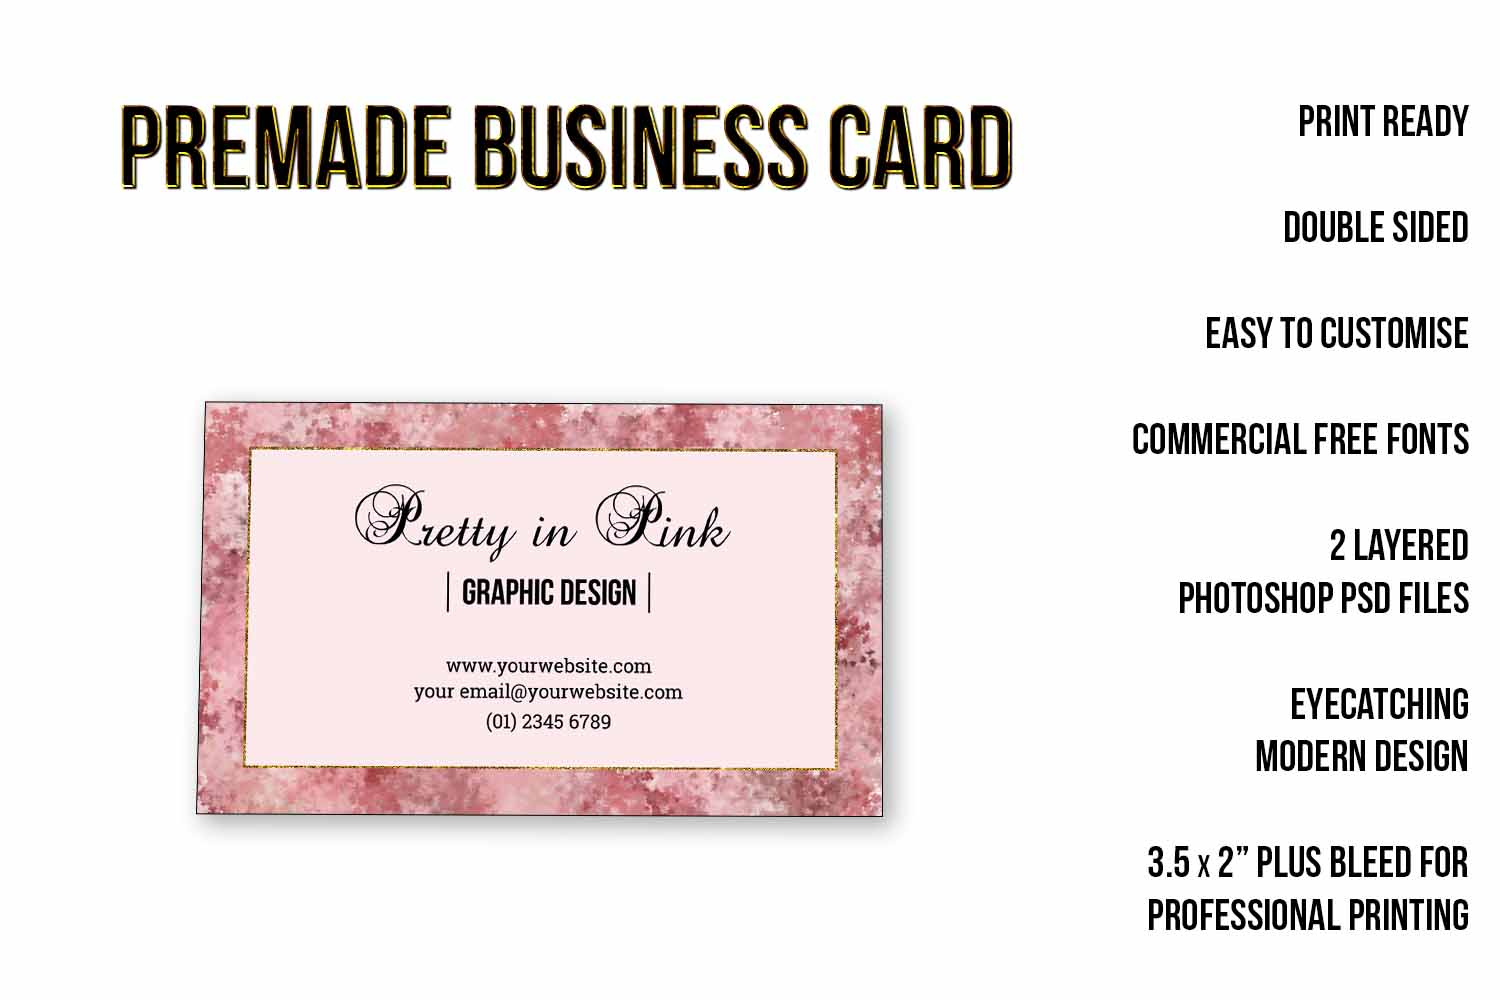 Elegant pink and gold business card template elegant pink and gold business card template example image 2 accmission Gallery